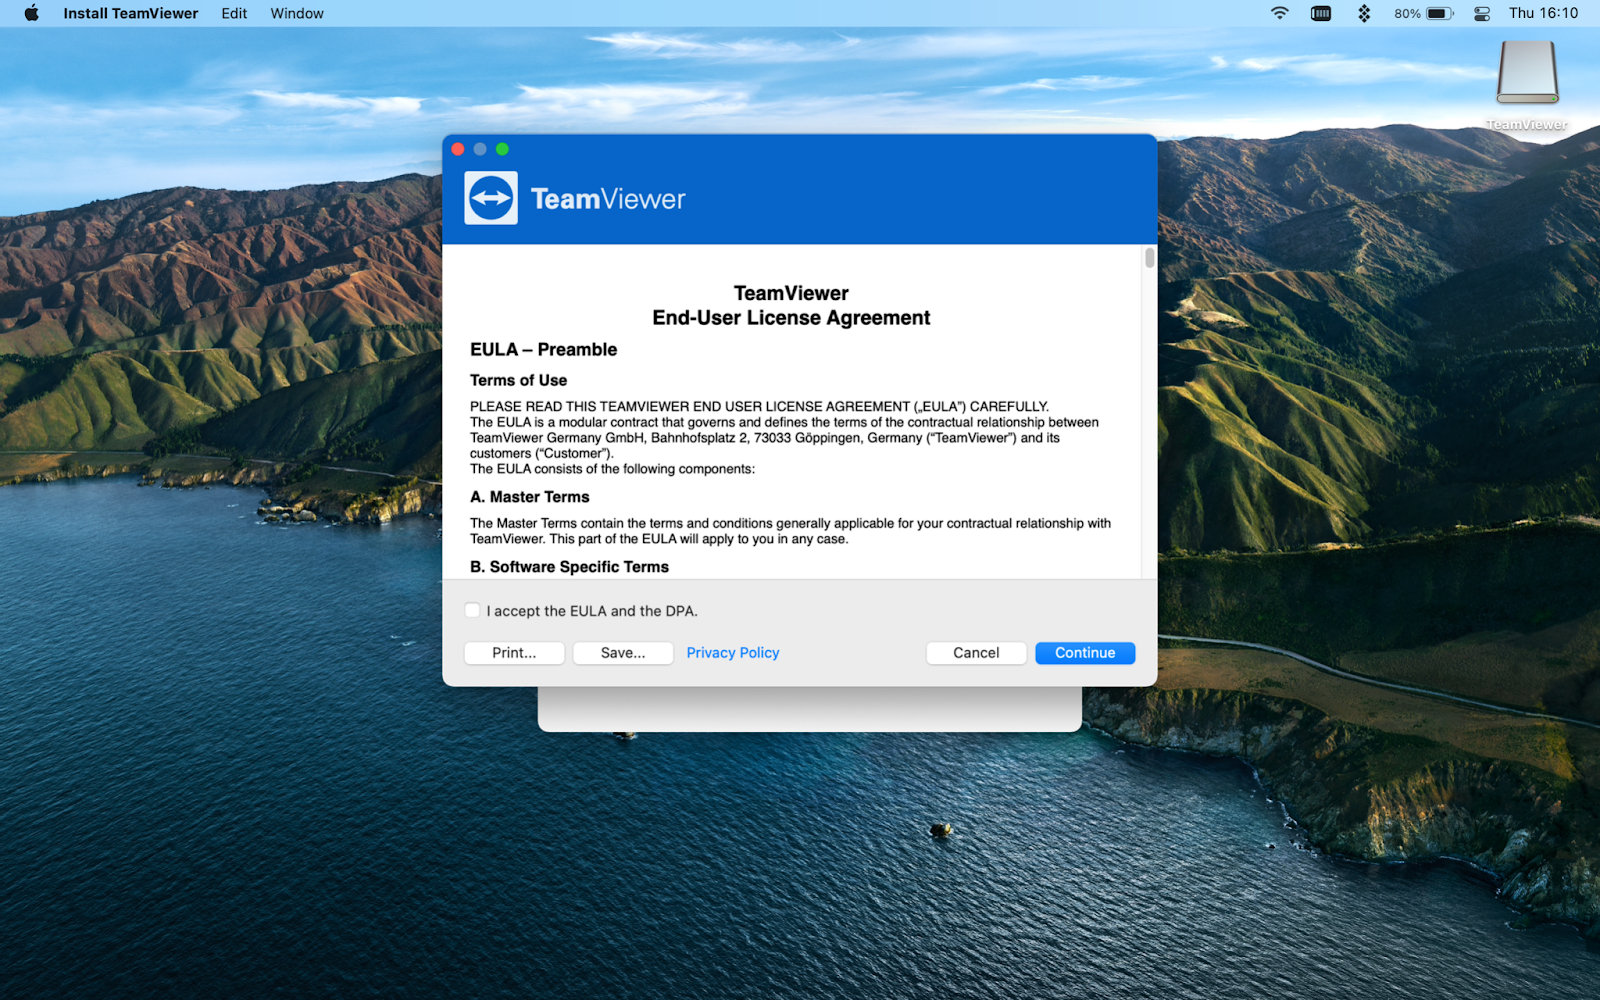 teamviewer-installation-terms-conditions